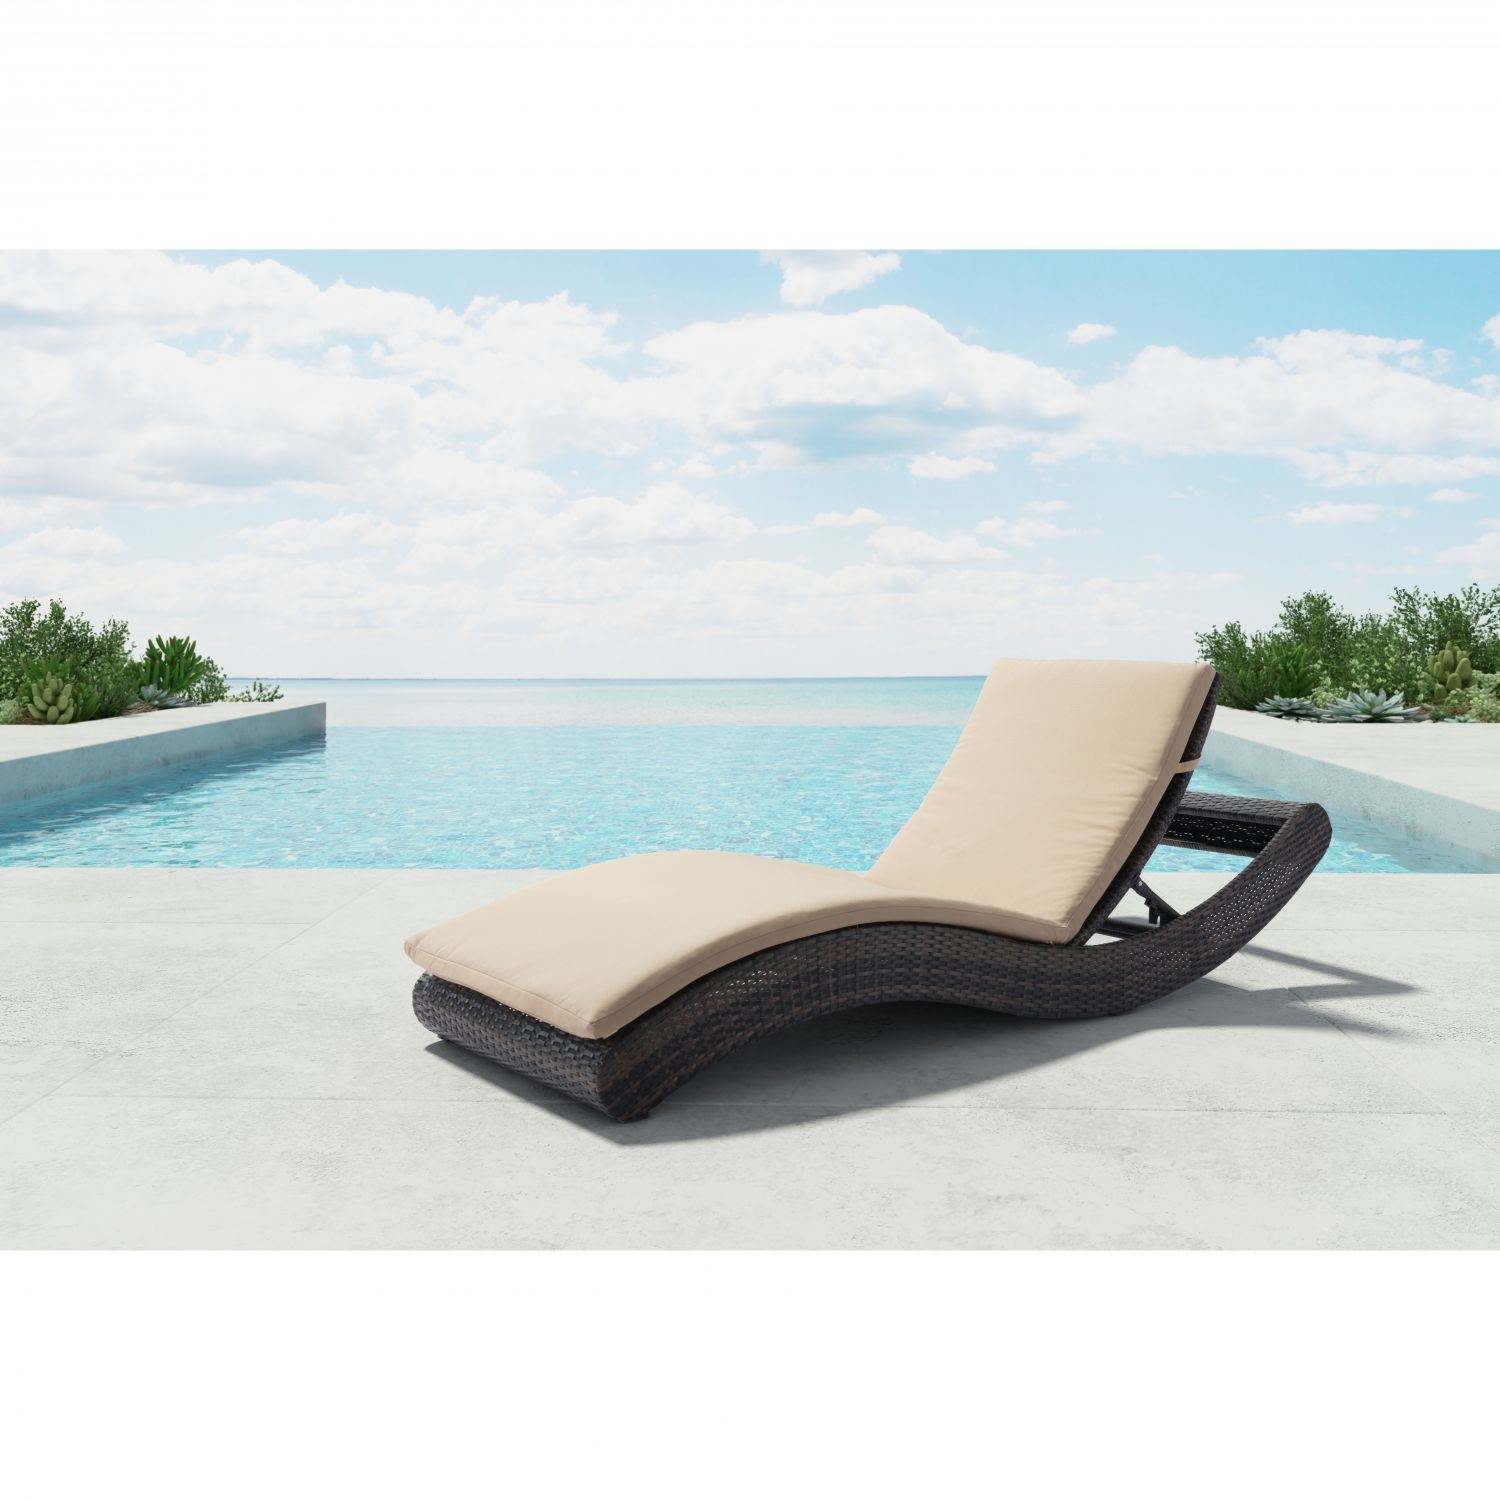 Pamelon beach chaise lounge brn beige 703840 zuo modern for Beach chaise longue